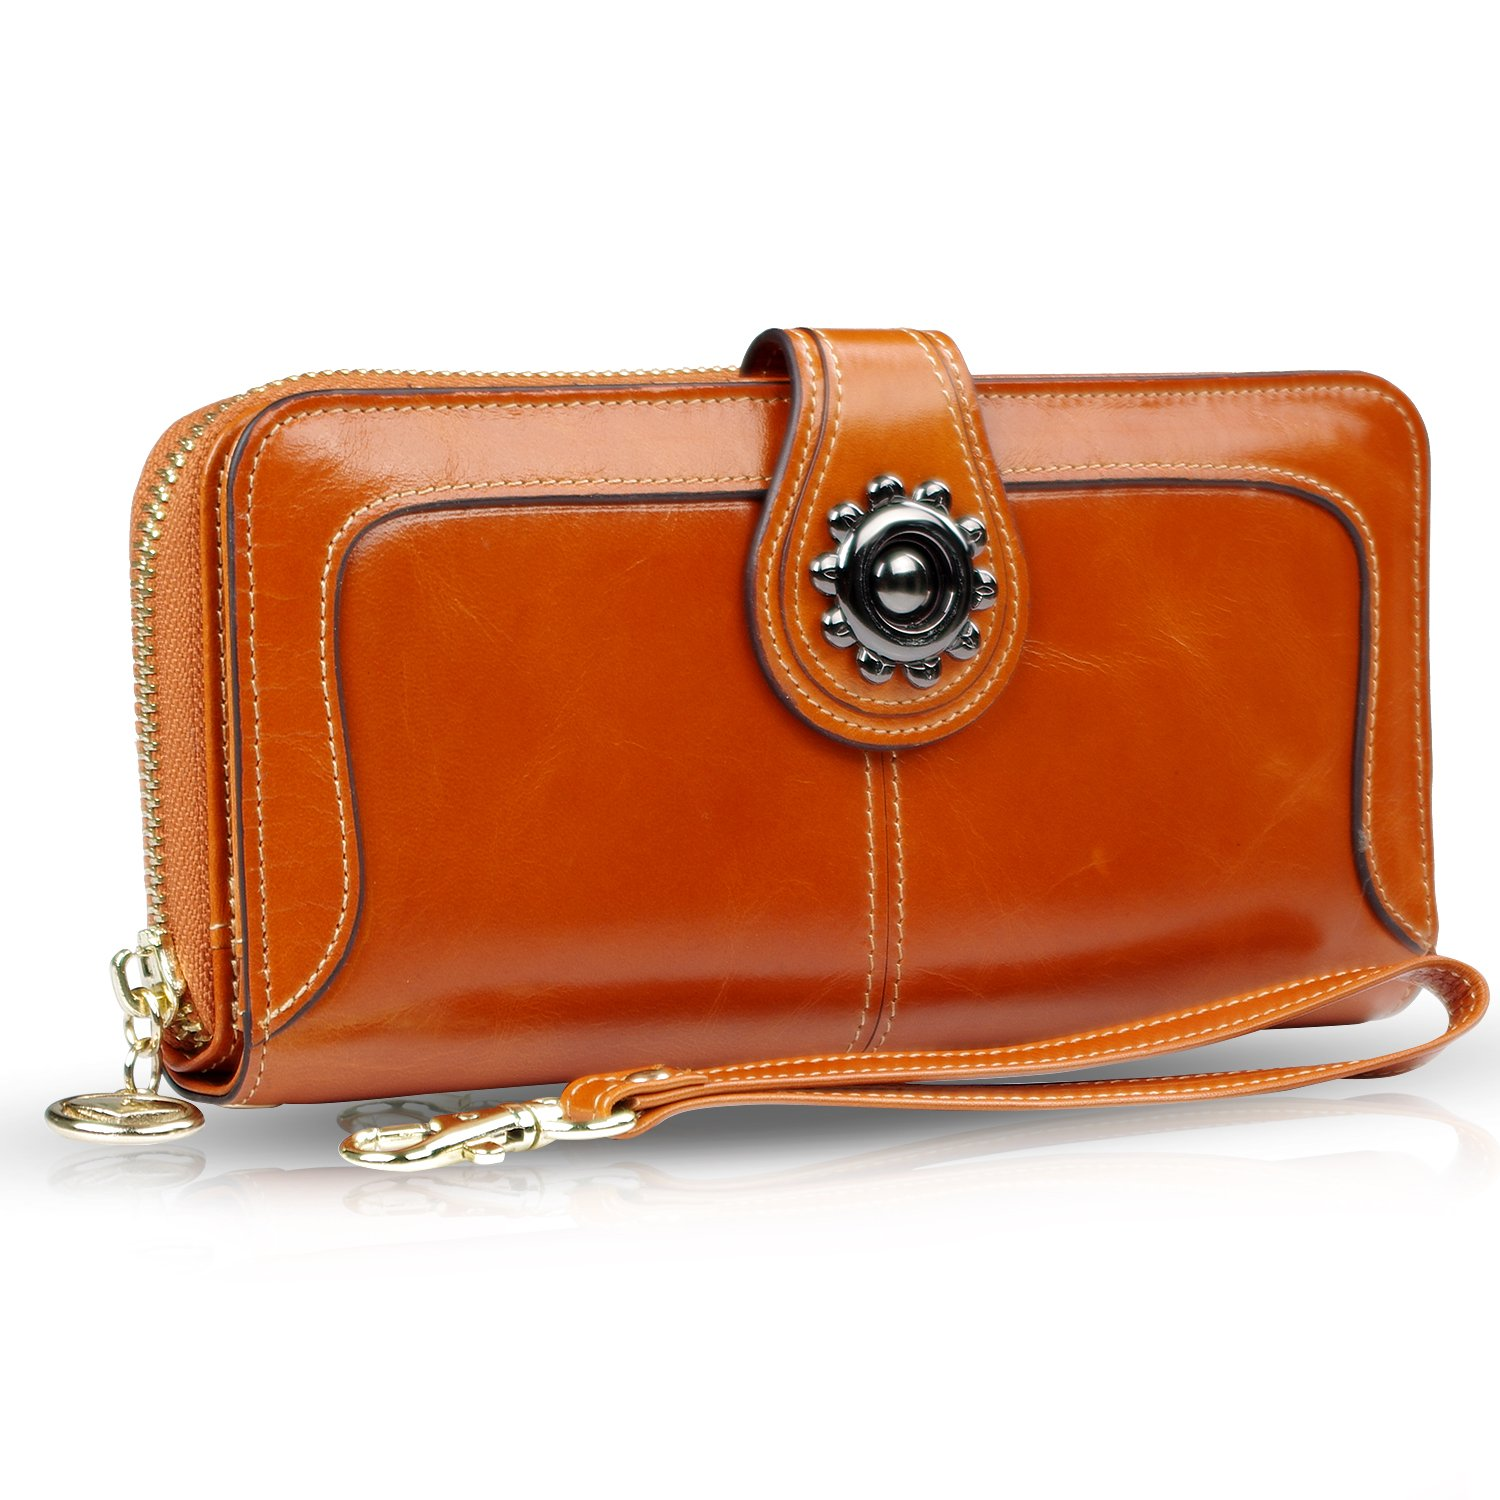 URBST womens wallet Large Capacity Leather Clutch Wallet with Wrist Strap (Soil yellow)